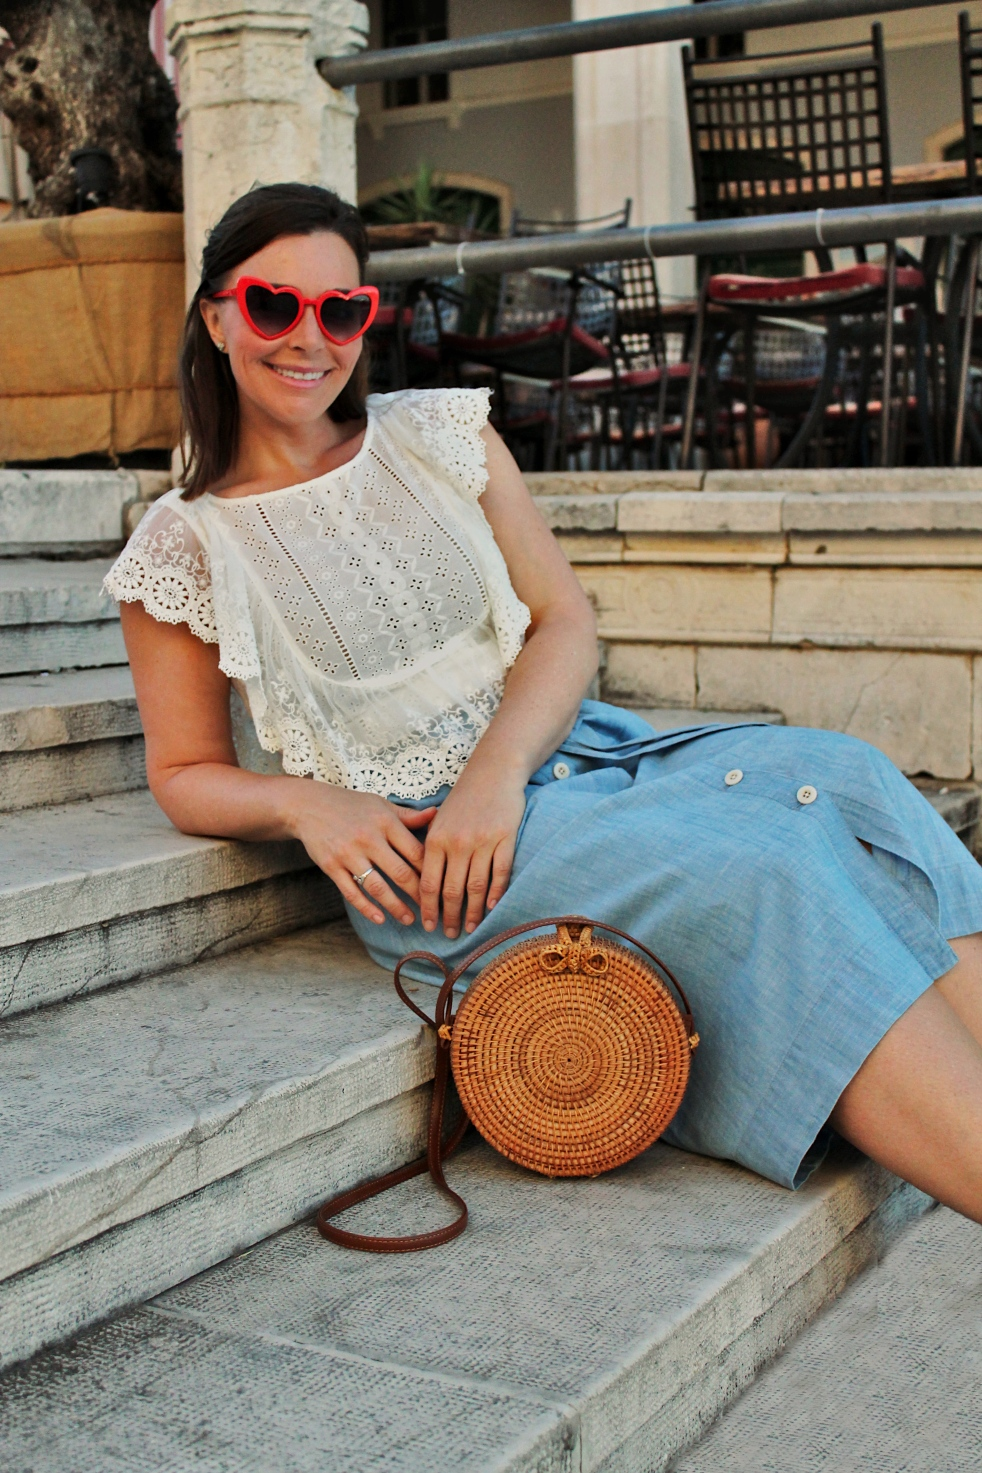 Split Croatia, Split Photographers, Split Photography, Sarah In Style, Sarah Meyer, Heart Sunglasses, Travel Wardrobe, Travel Fashion, Travel Accessories, How to Pack for Vacation, Packing Tips, Travel Basics, Wardrobe Basics, Visit Split, Visit Croatia, Wicker Purse, Cool Sunglasses, How to accessorize, Samm Creative